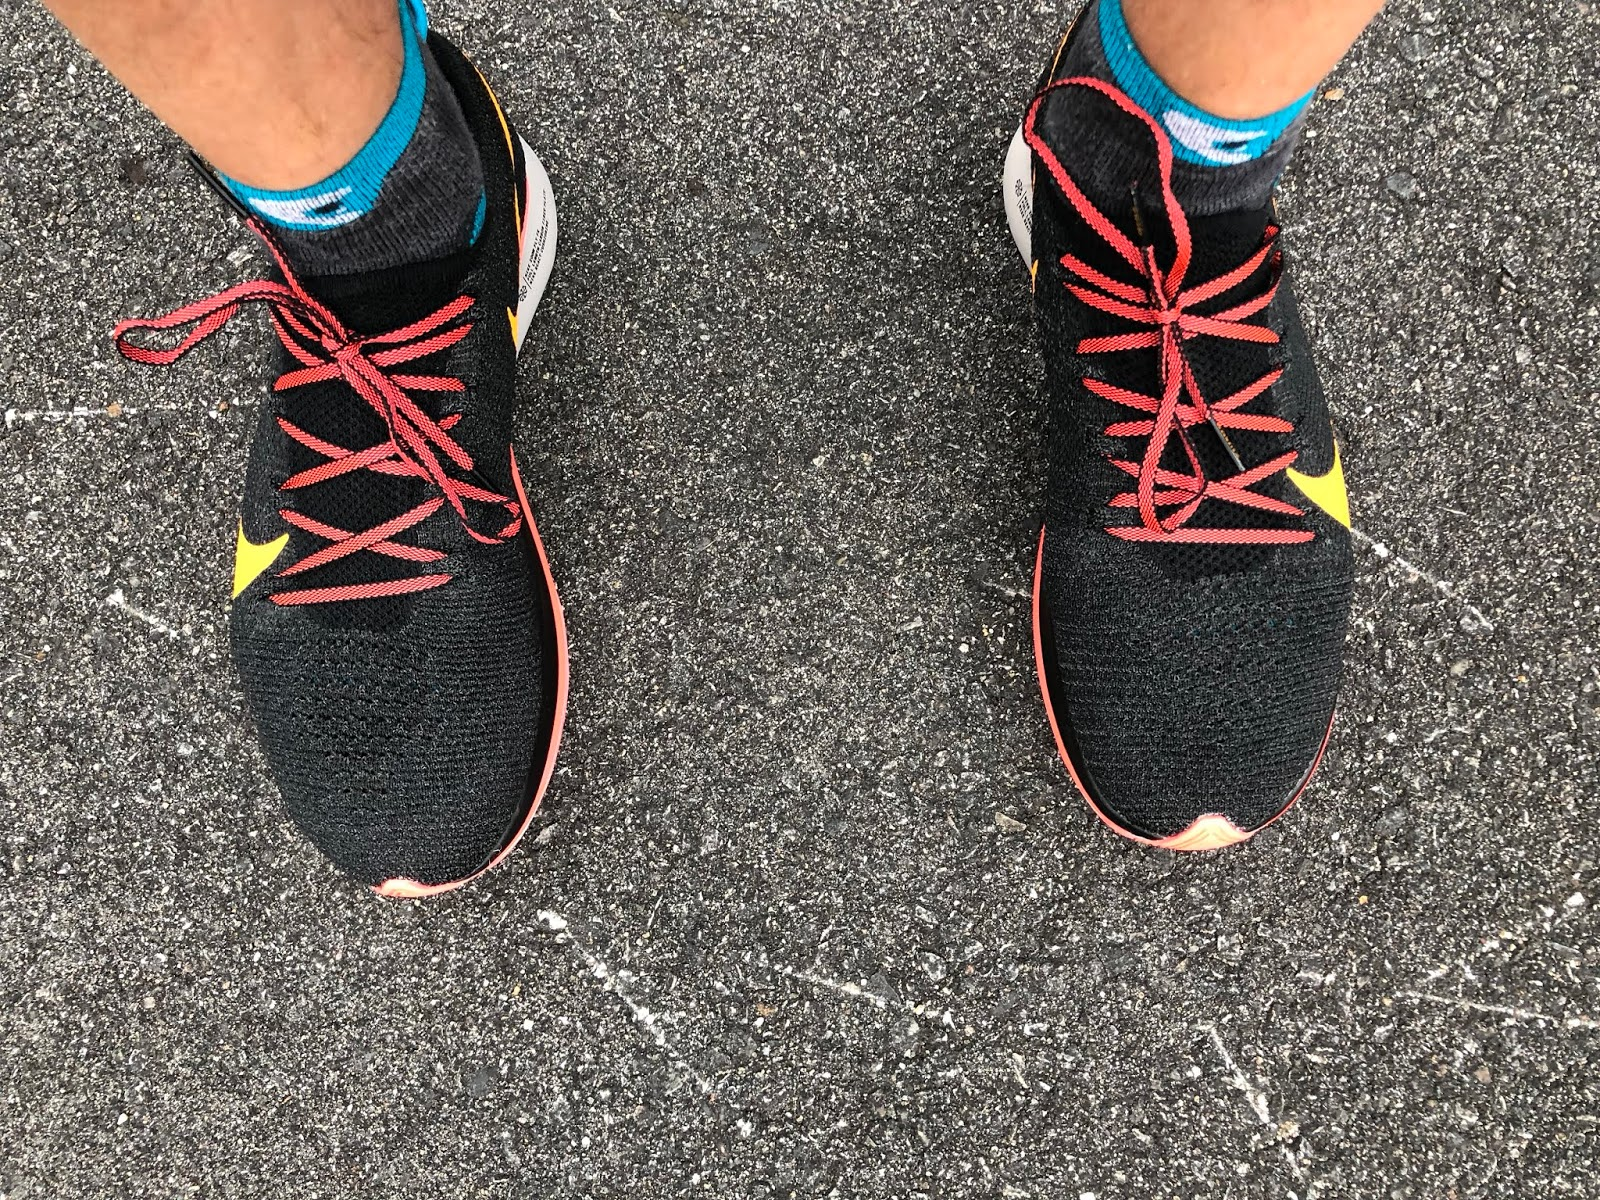 261edccf87f77 Road Trail Run  Nike Zoom Fly Flyknit Initial Road Test Review  Zoom ...